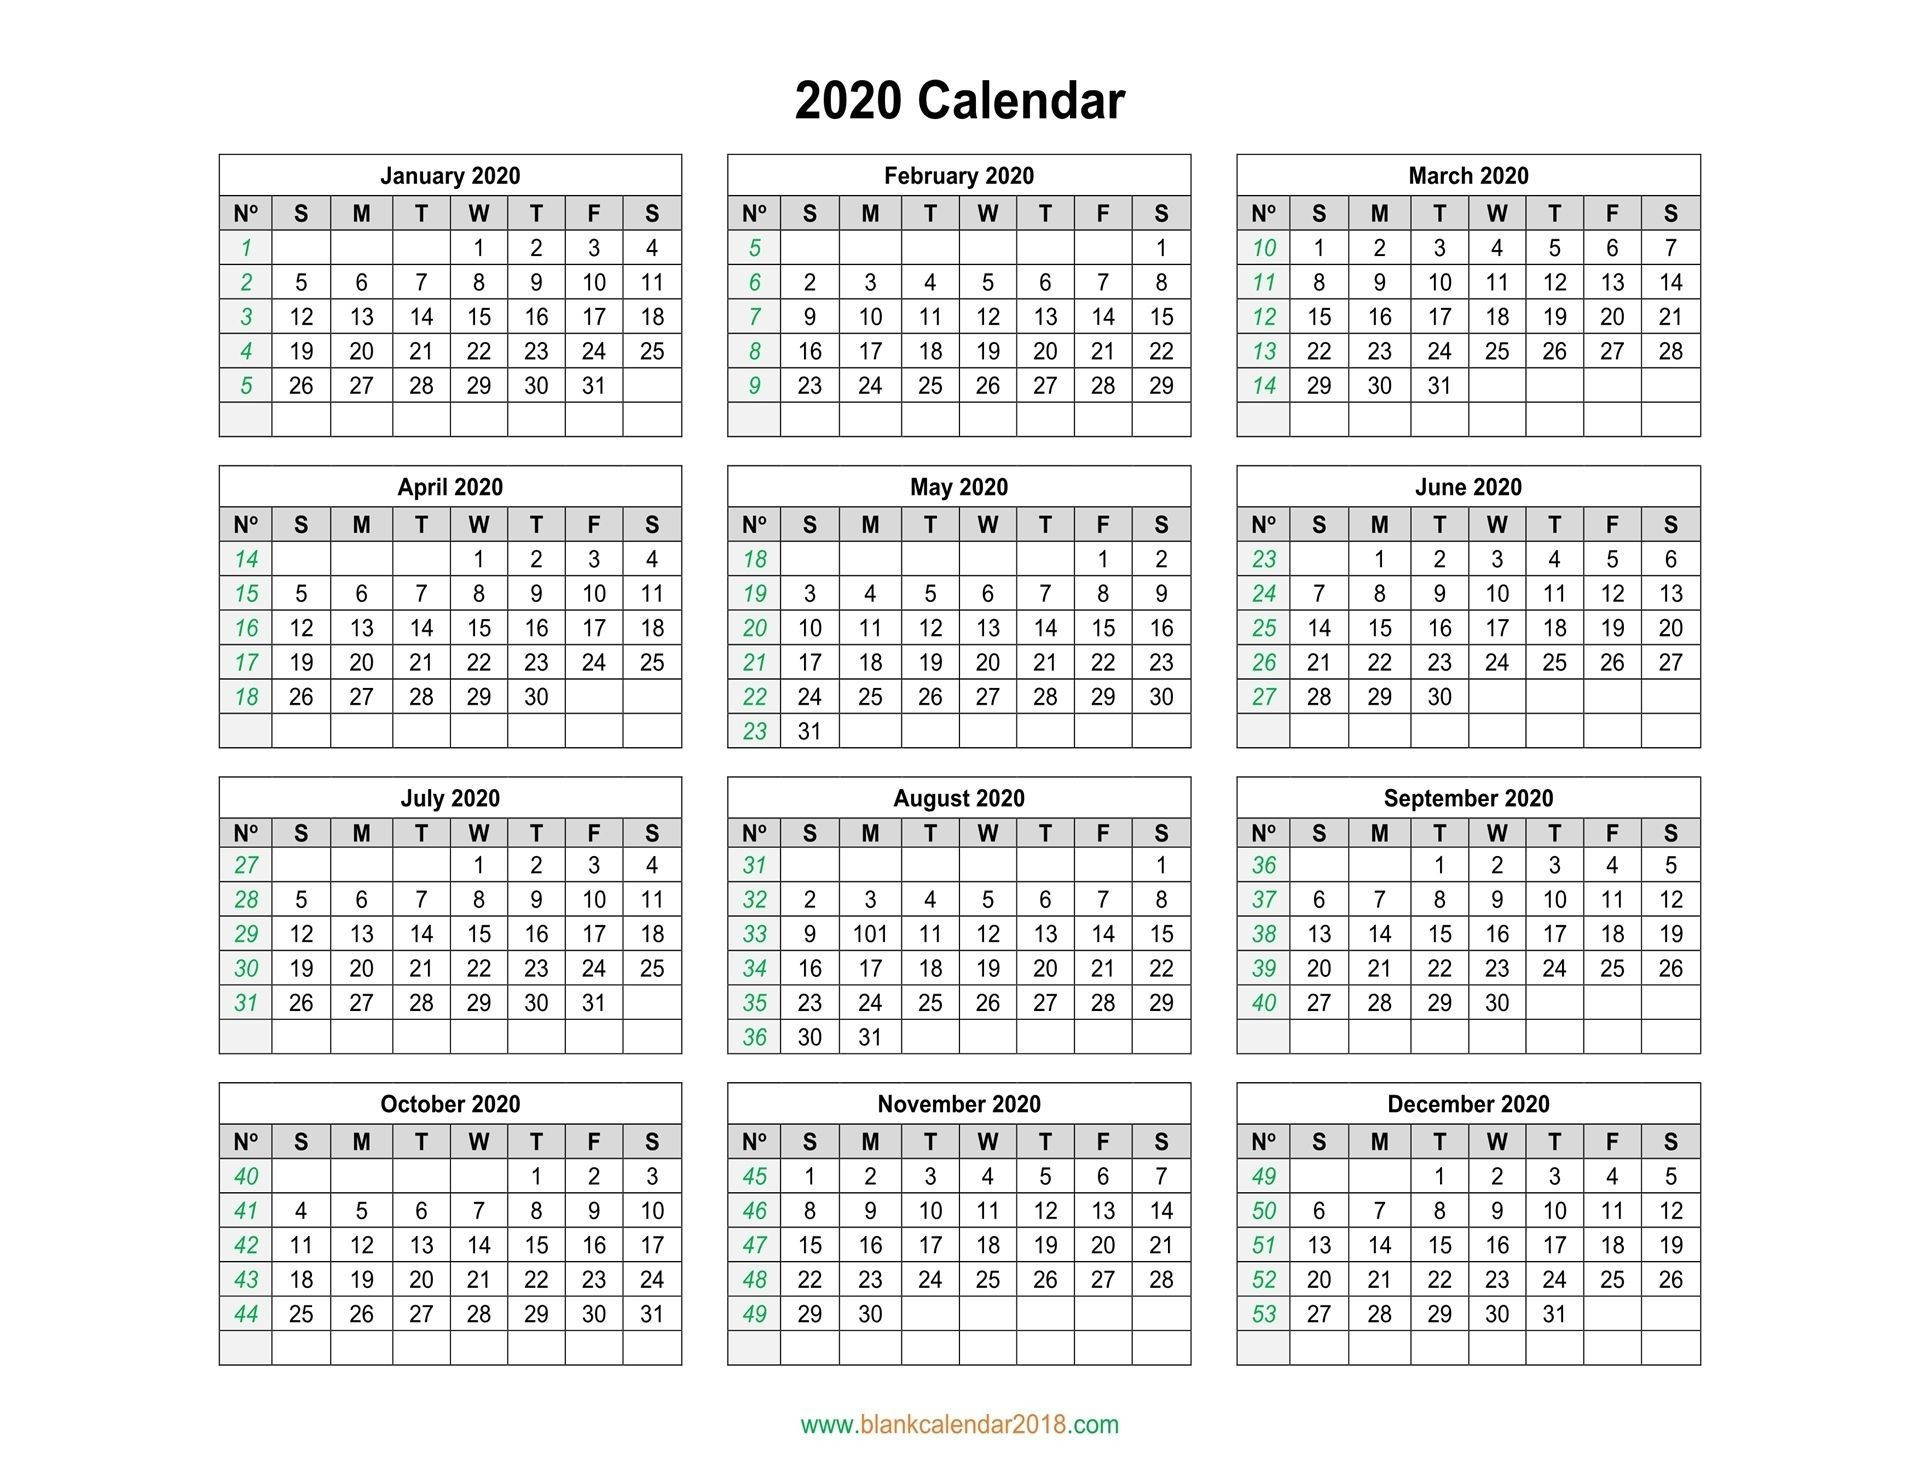 Remarkable Calendar With Days Numbered 2020 In 2020-Rut Predictions For 2021